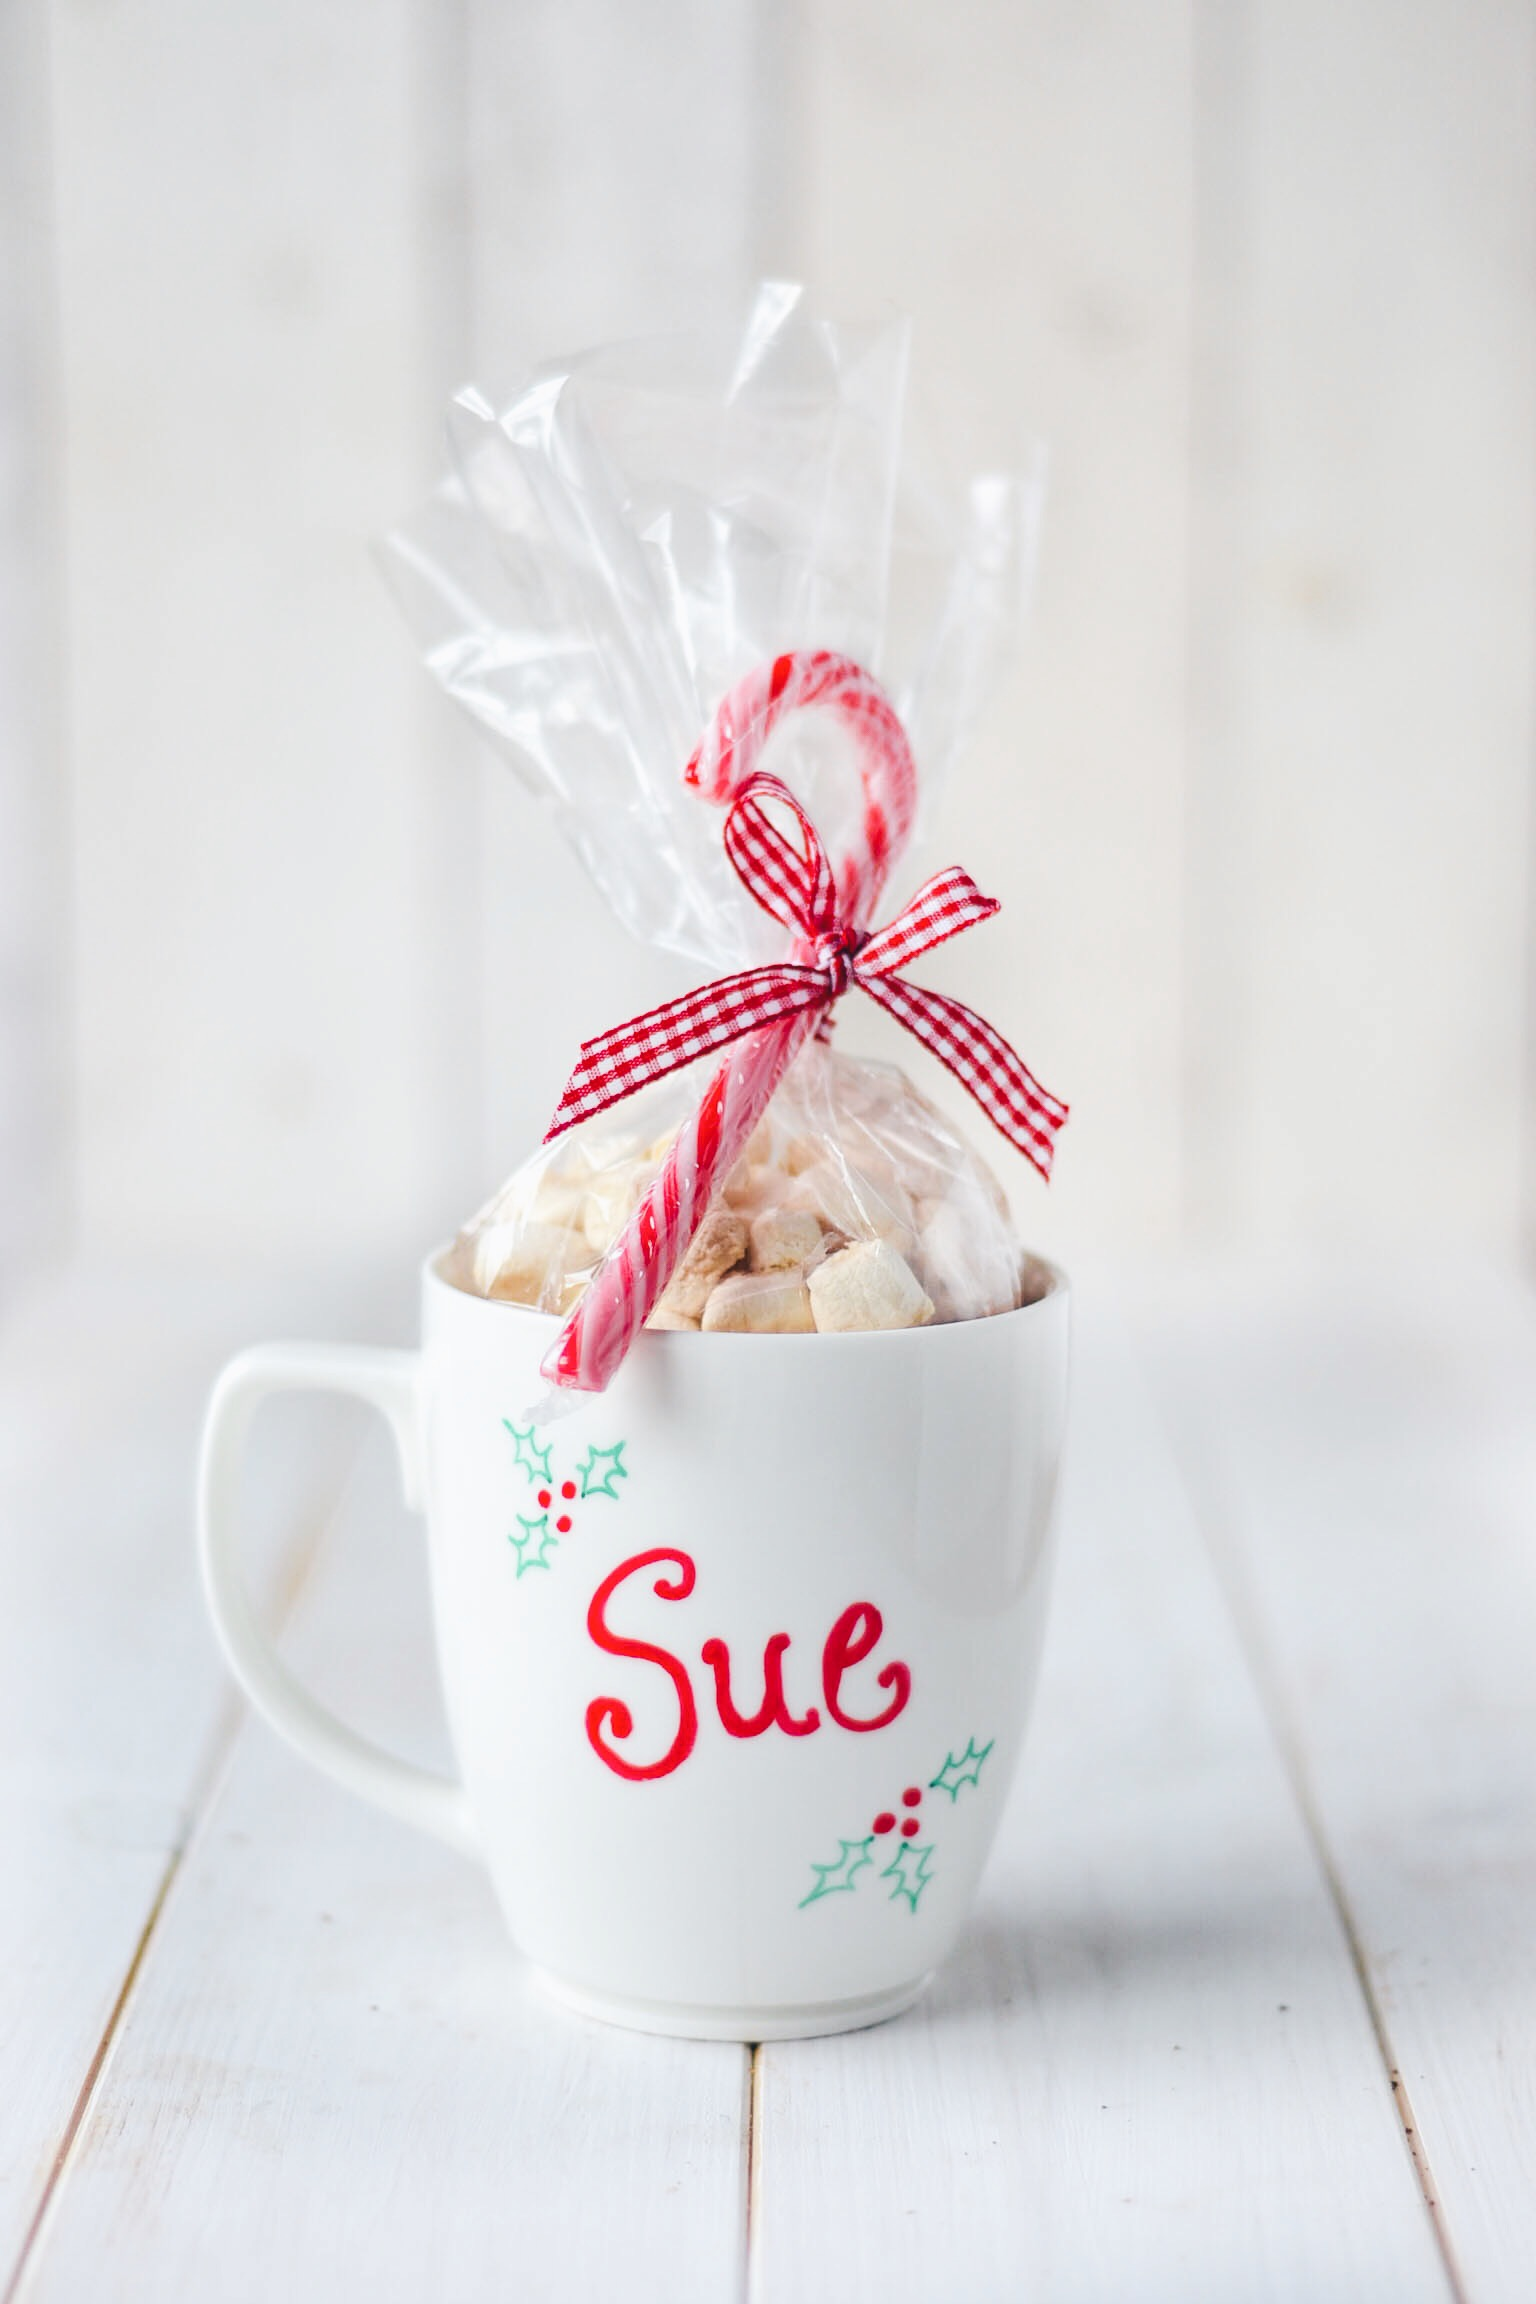 DIY vegan hot cocoa in a personalized mug